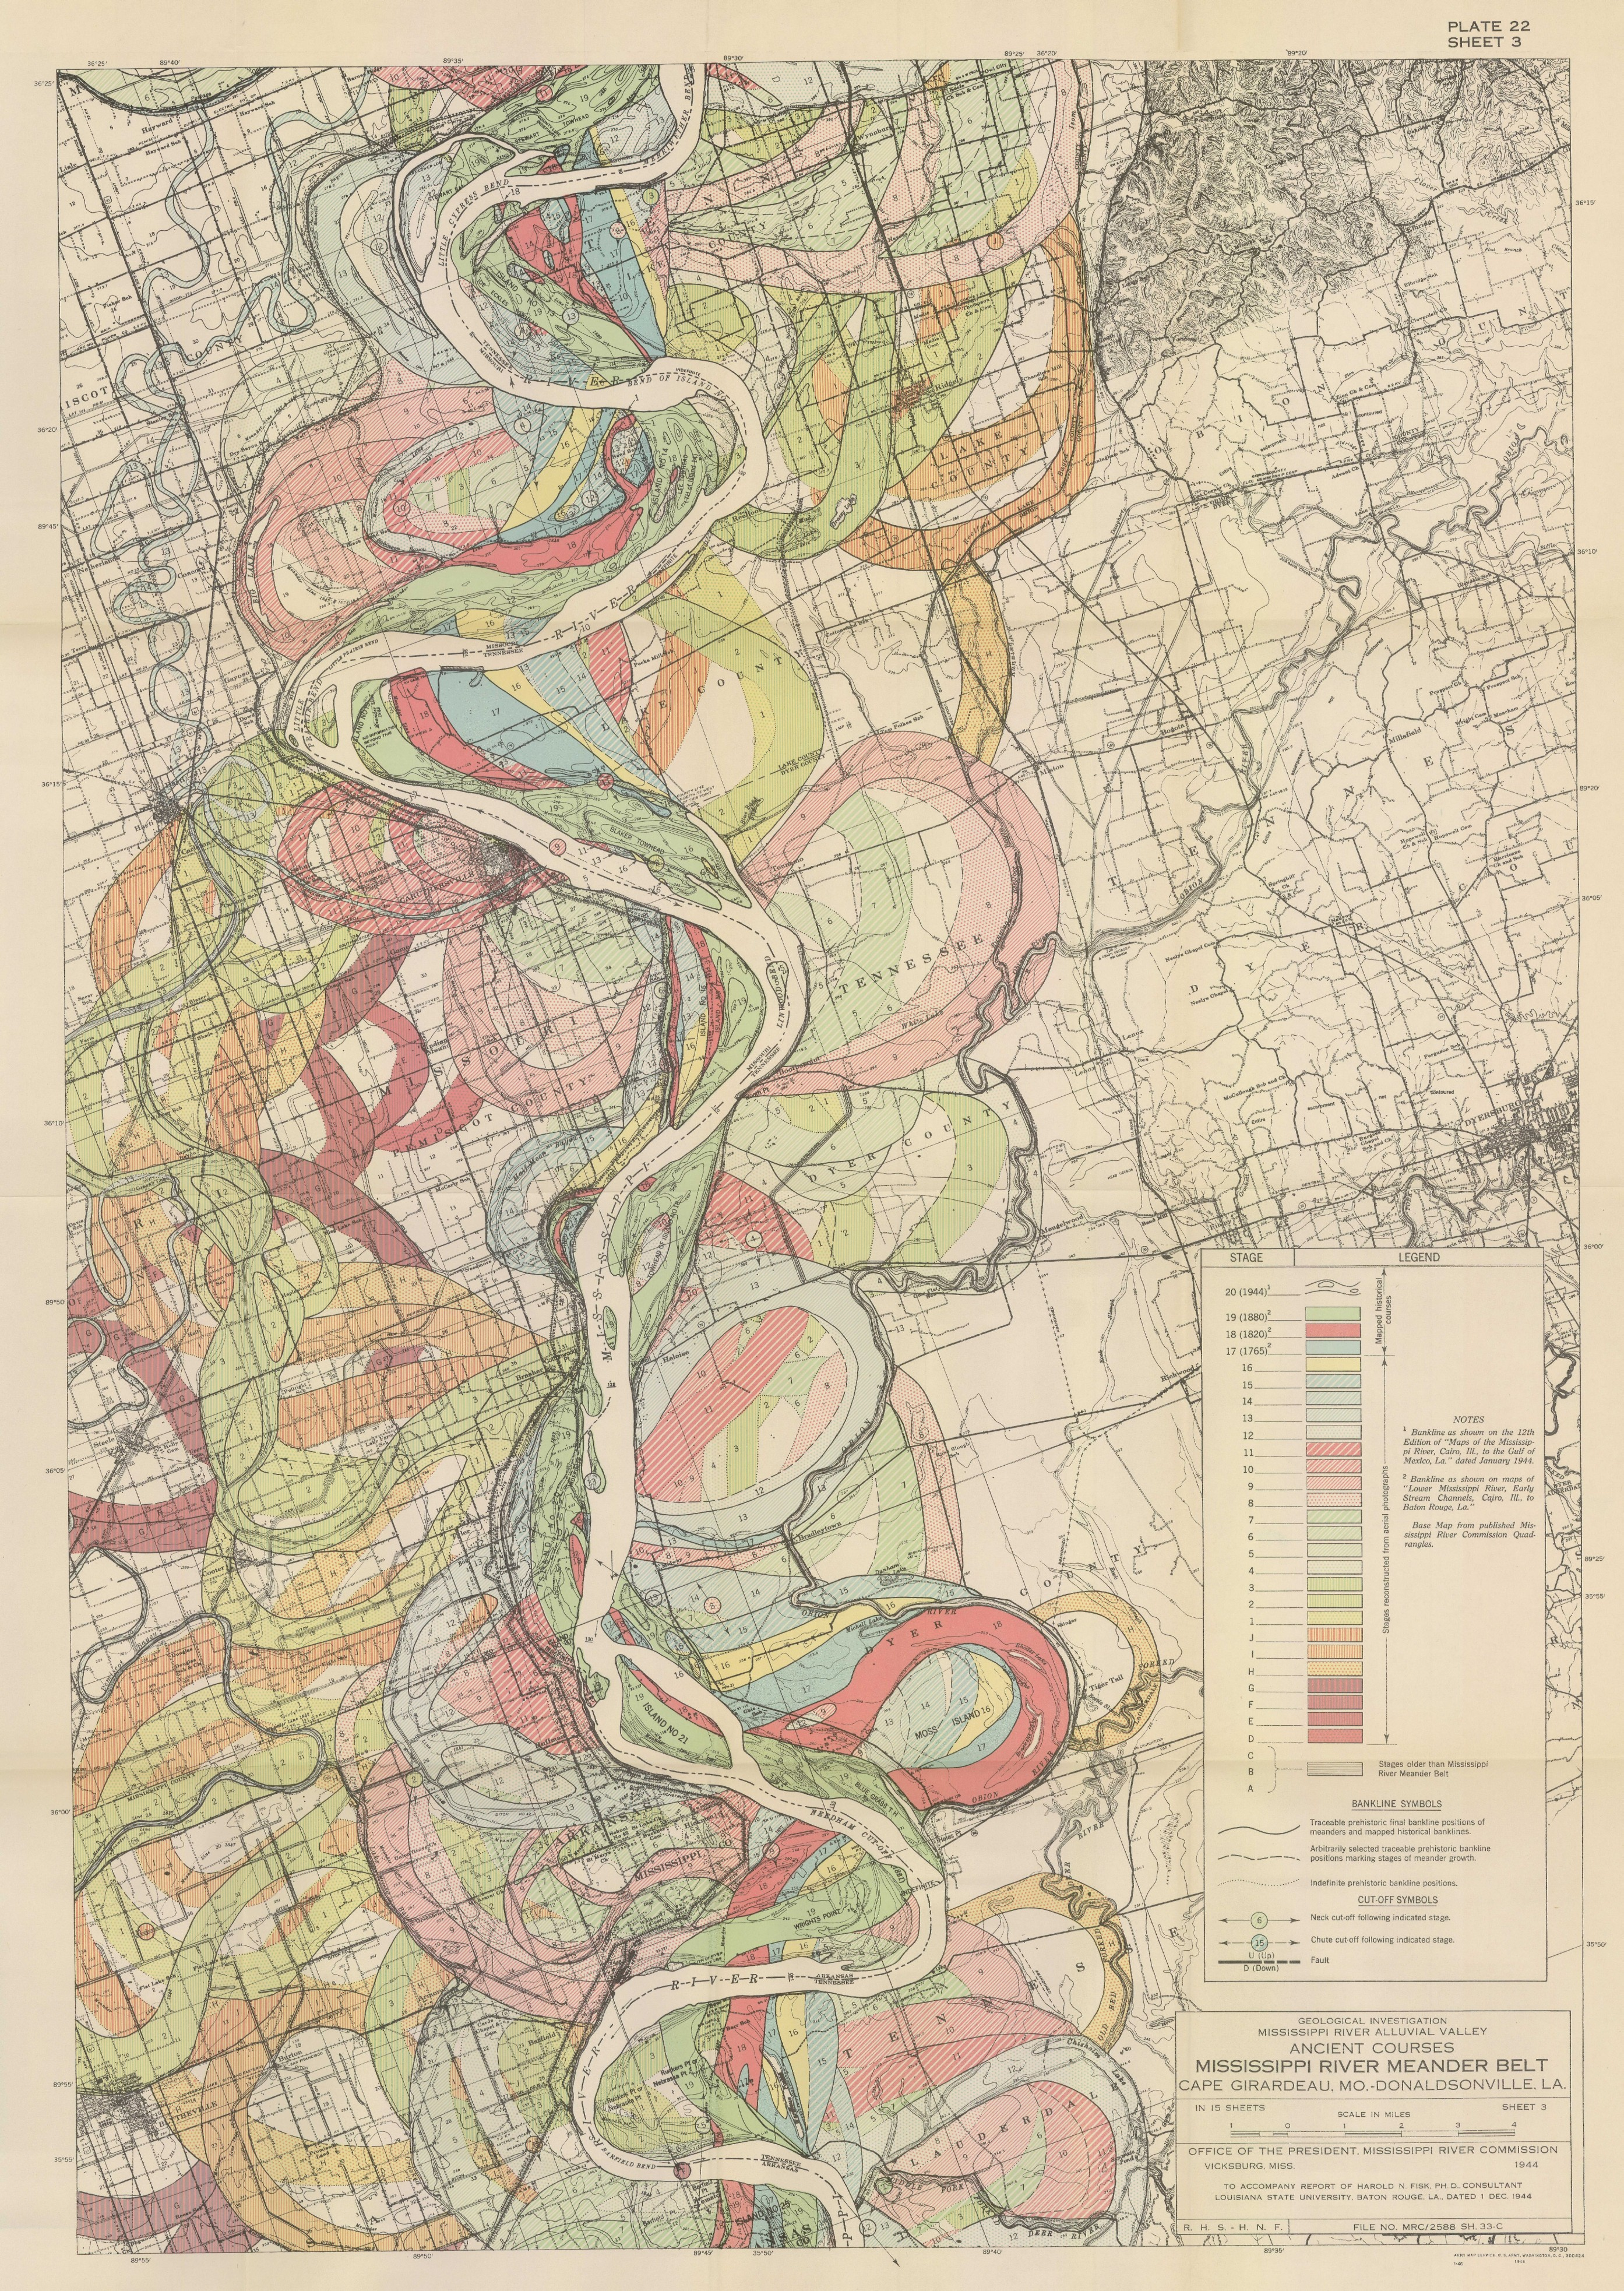 1944 Map Mississippi River Meander Belt Alluvial Valley Harold Fisk Sheet 9